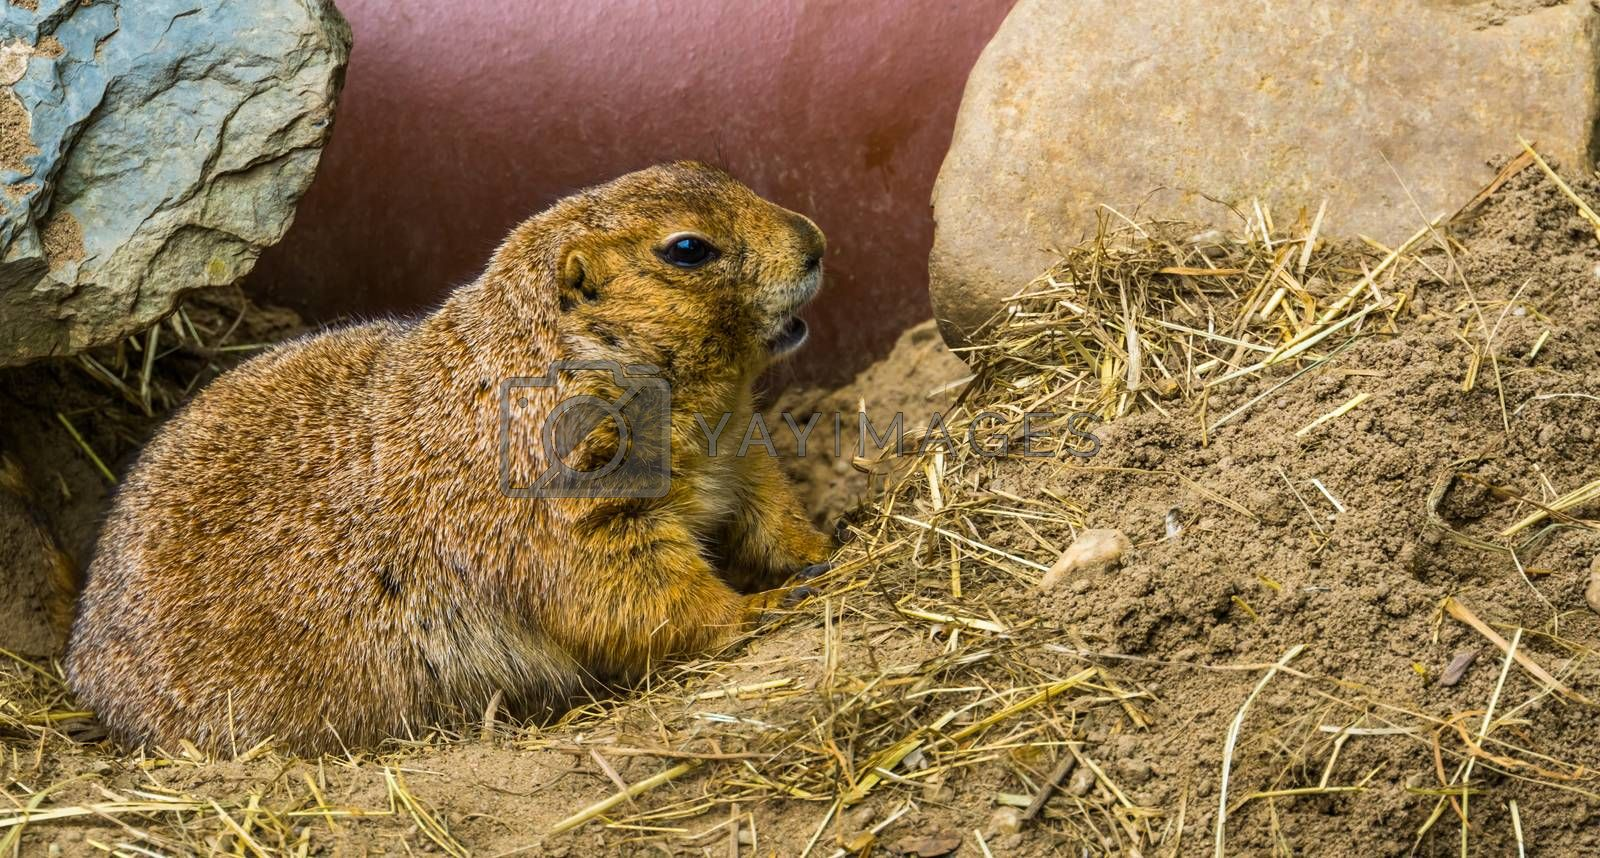 Black tailed prairie dog in closeup, adorable and popular pet, tropical rodent from America